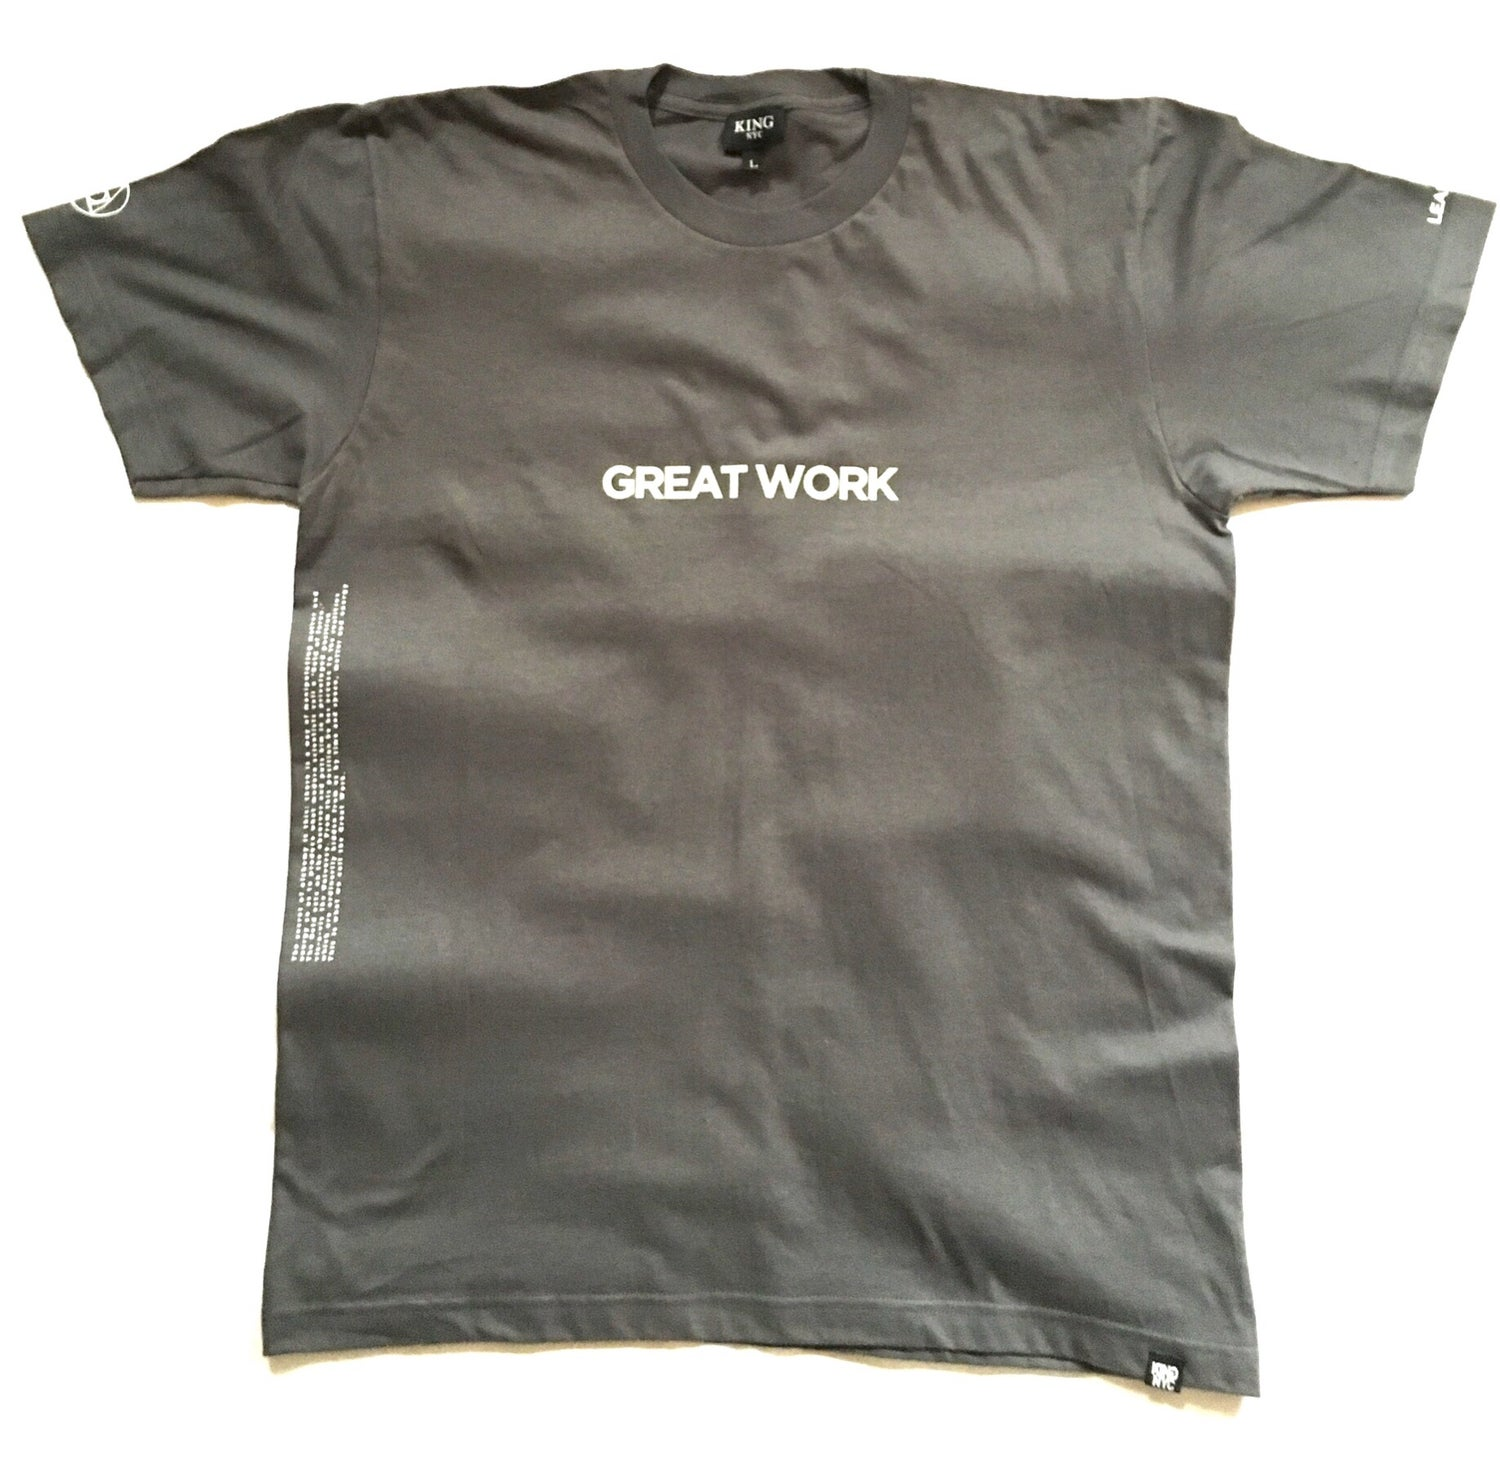 Image of KingNYC Great Work T-Shirt